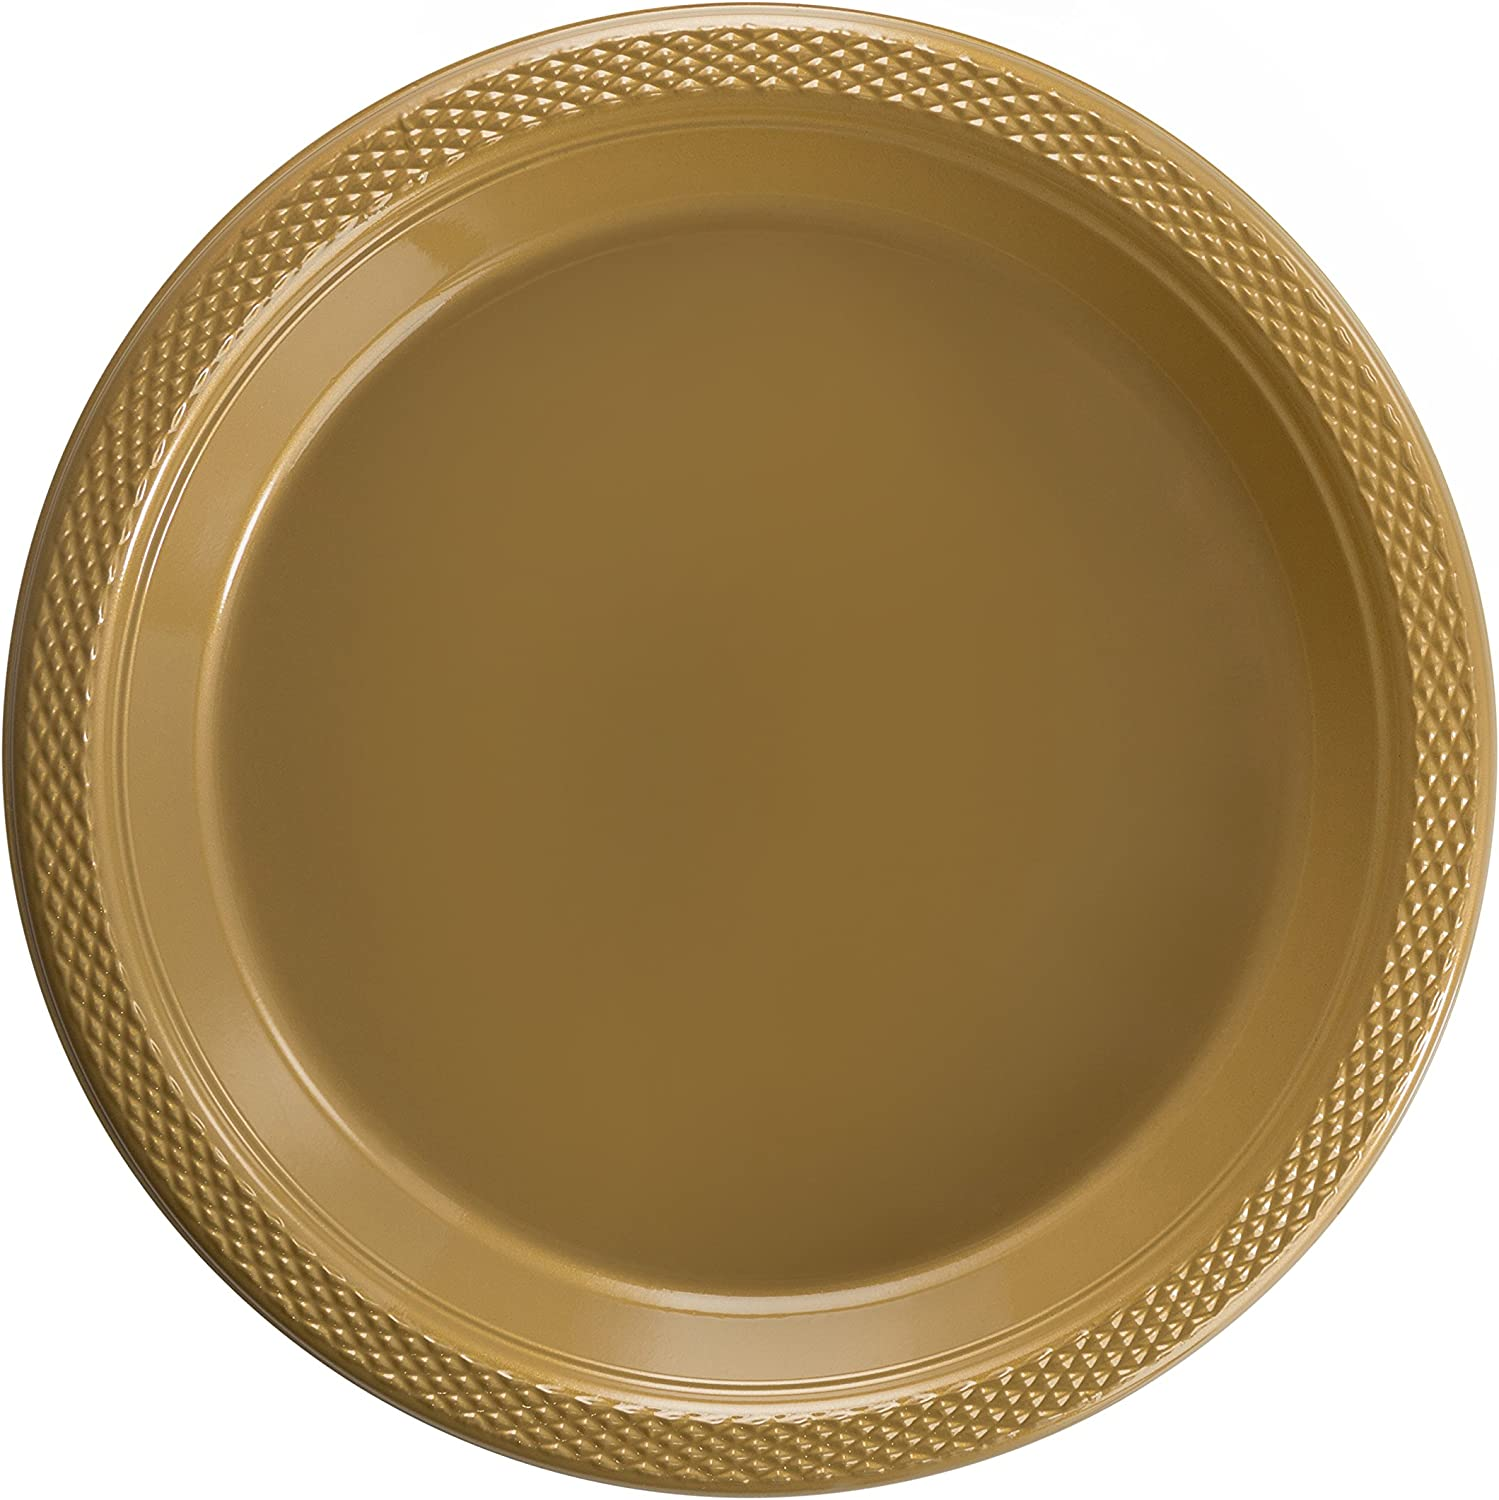 Exquisite Plastic Dessert/Salad Plates - Solid Color Disposable Plates - 100 Count (10 Inch., Gold)